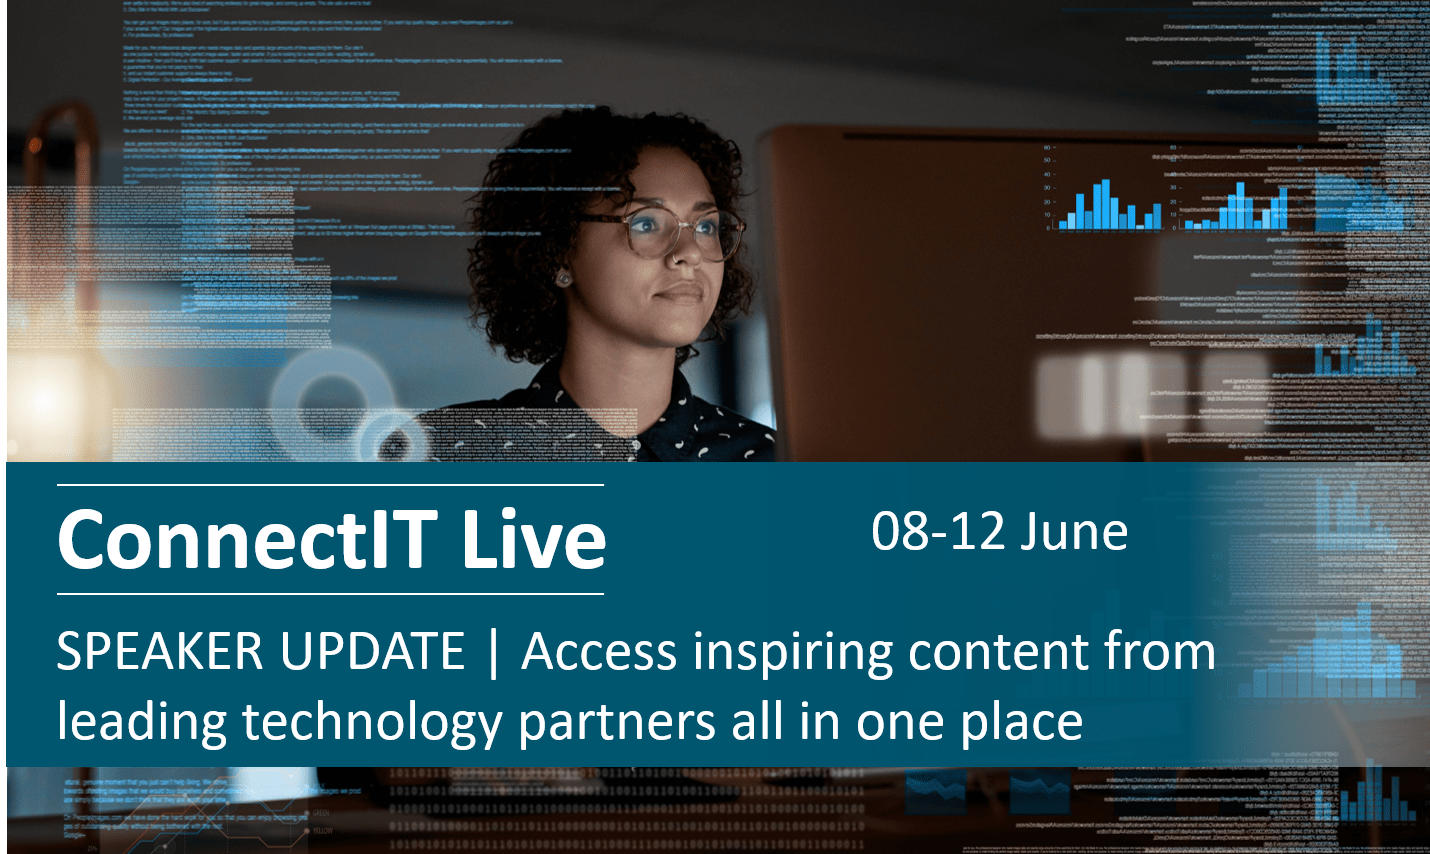 ConnectIT LIVE